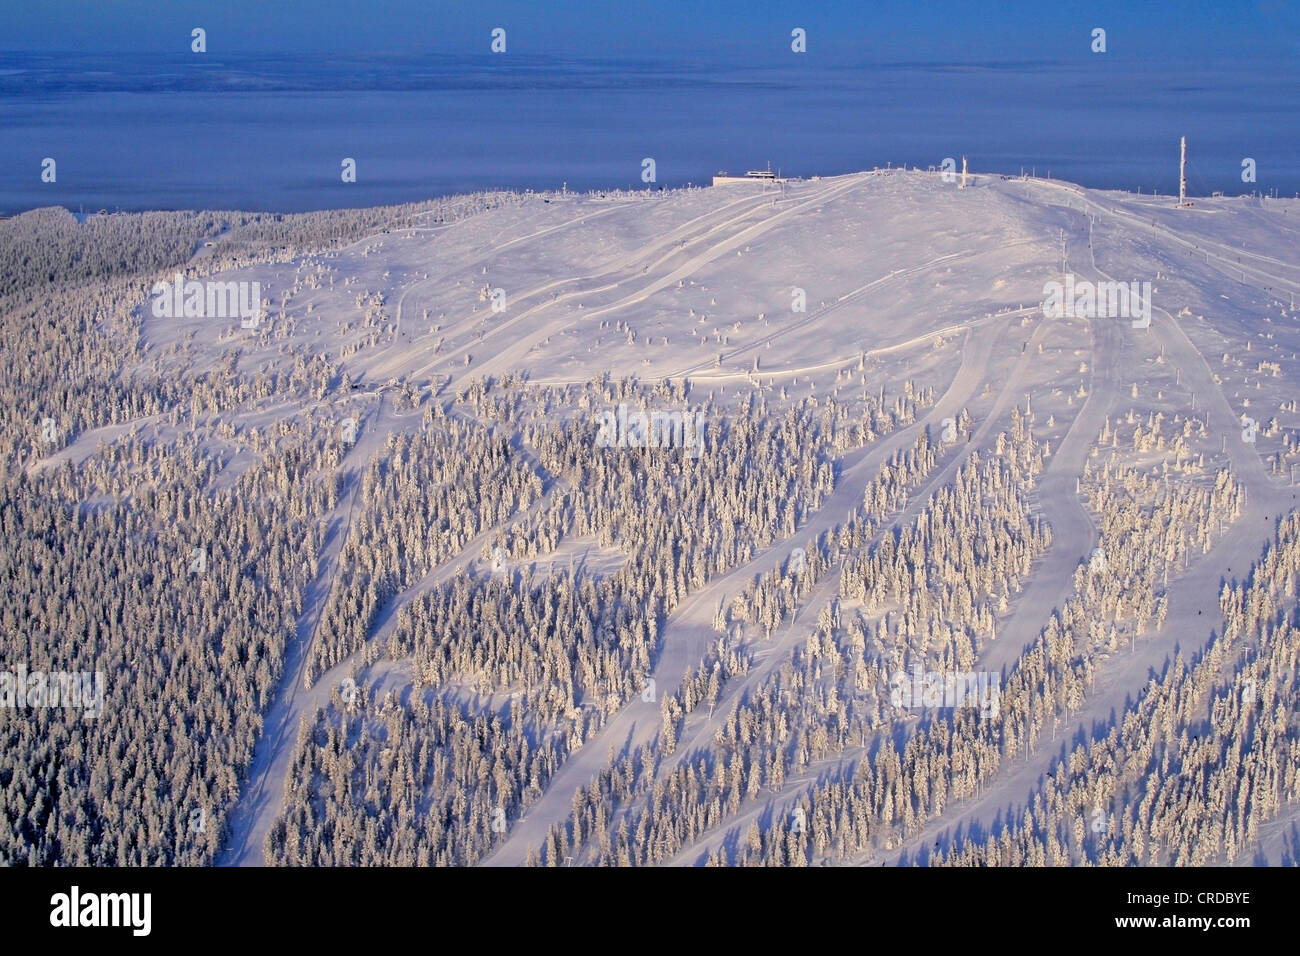 Kittilae photographed from air, Finland, Lapland - Stock Image